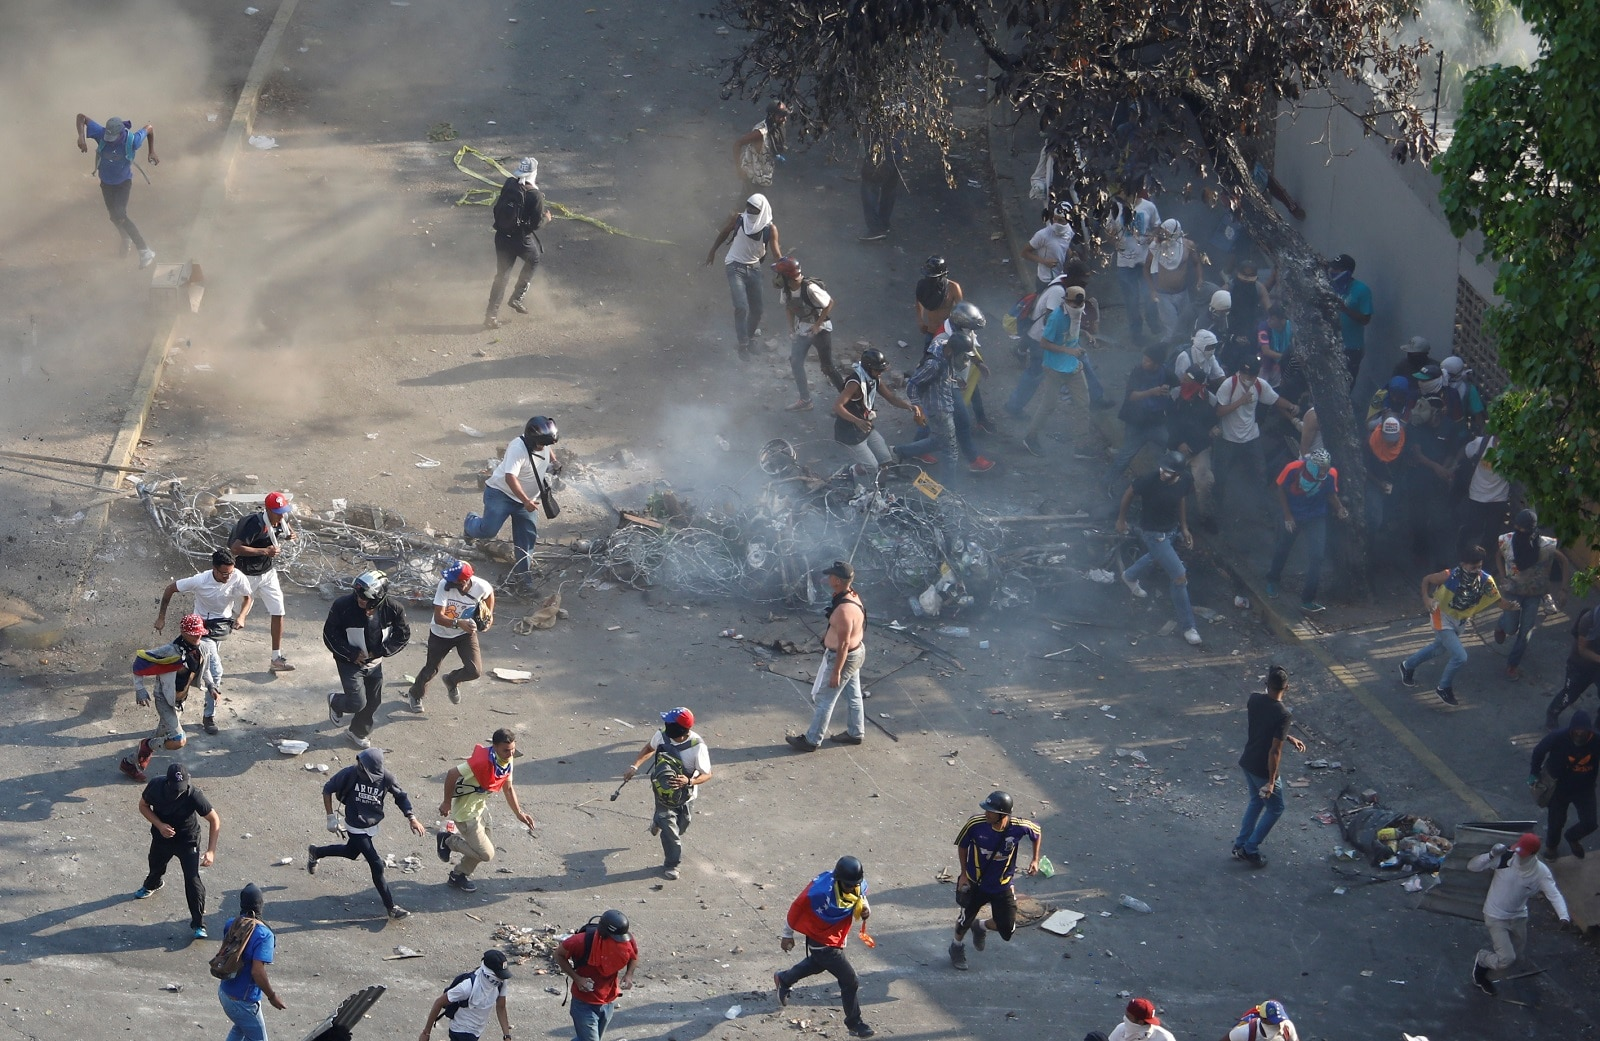 Demonstrators are seen during clashes with security forces in Caracas Venezuela, May 1, 2019. REUTERS/Adriana Loureiro